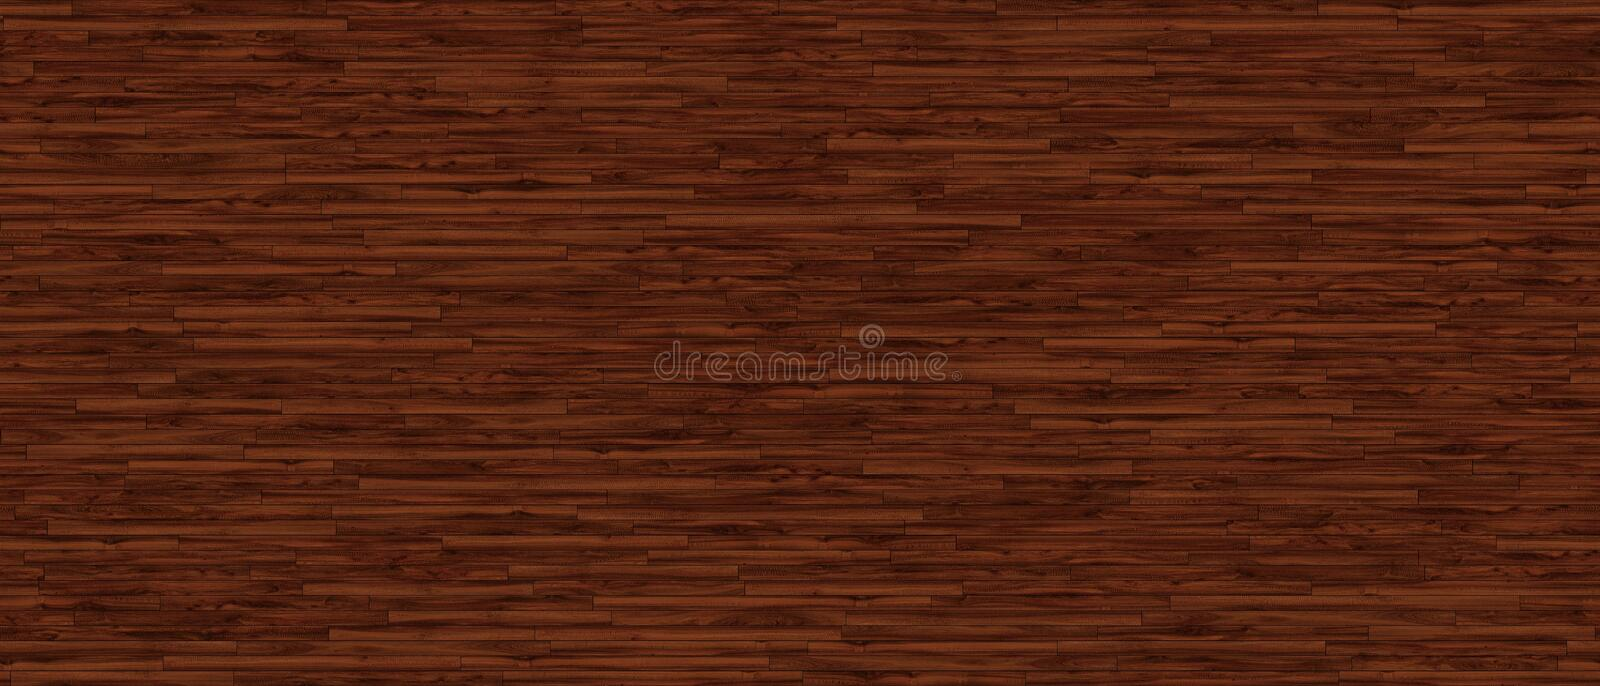 Natural wood siding or flooring stock illustration